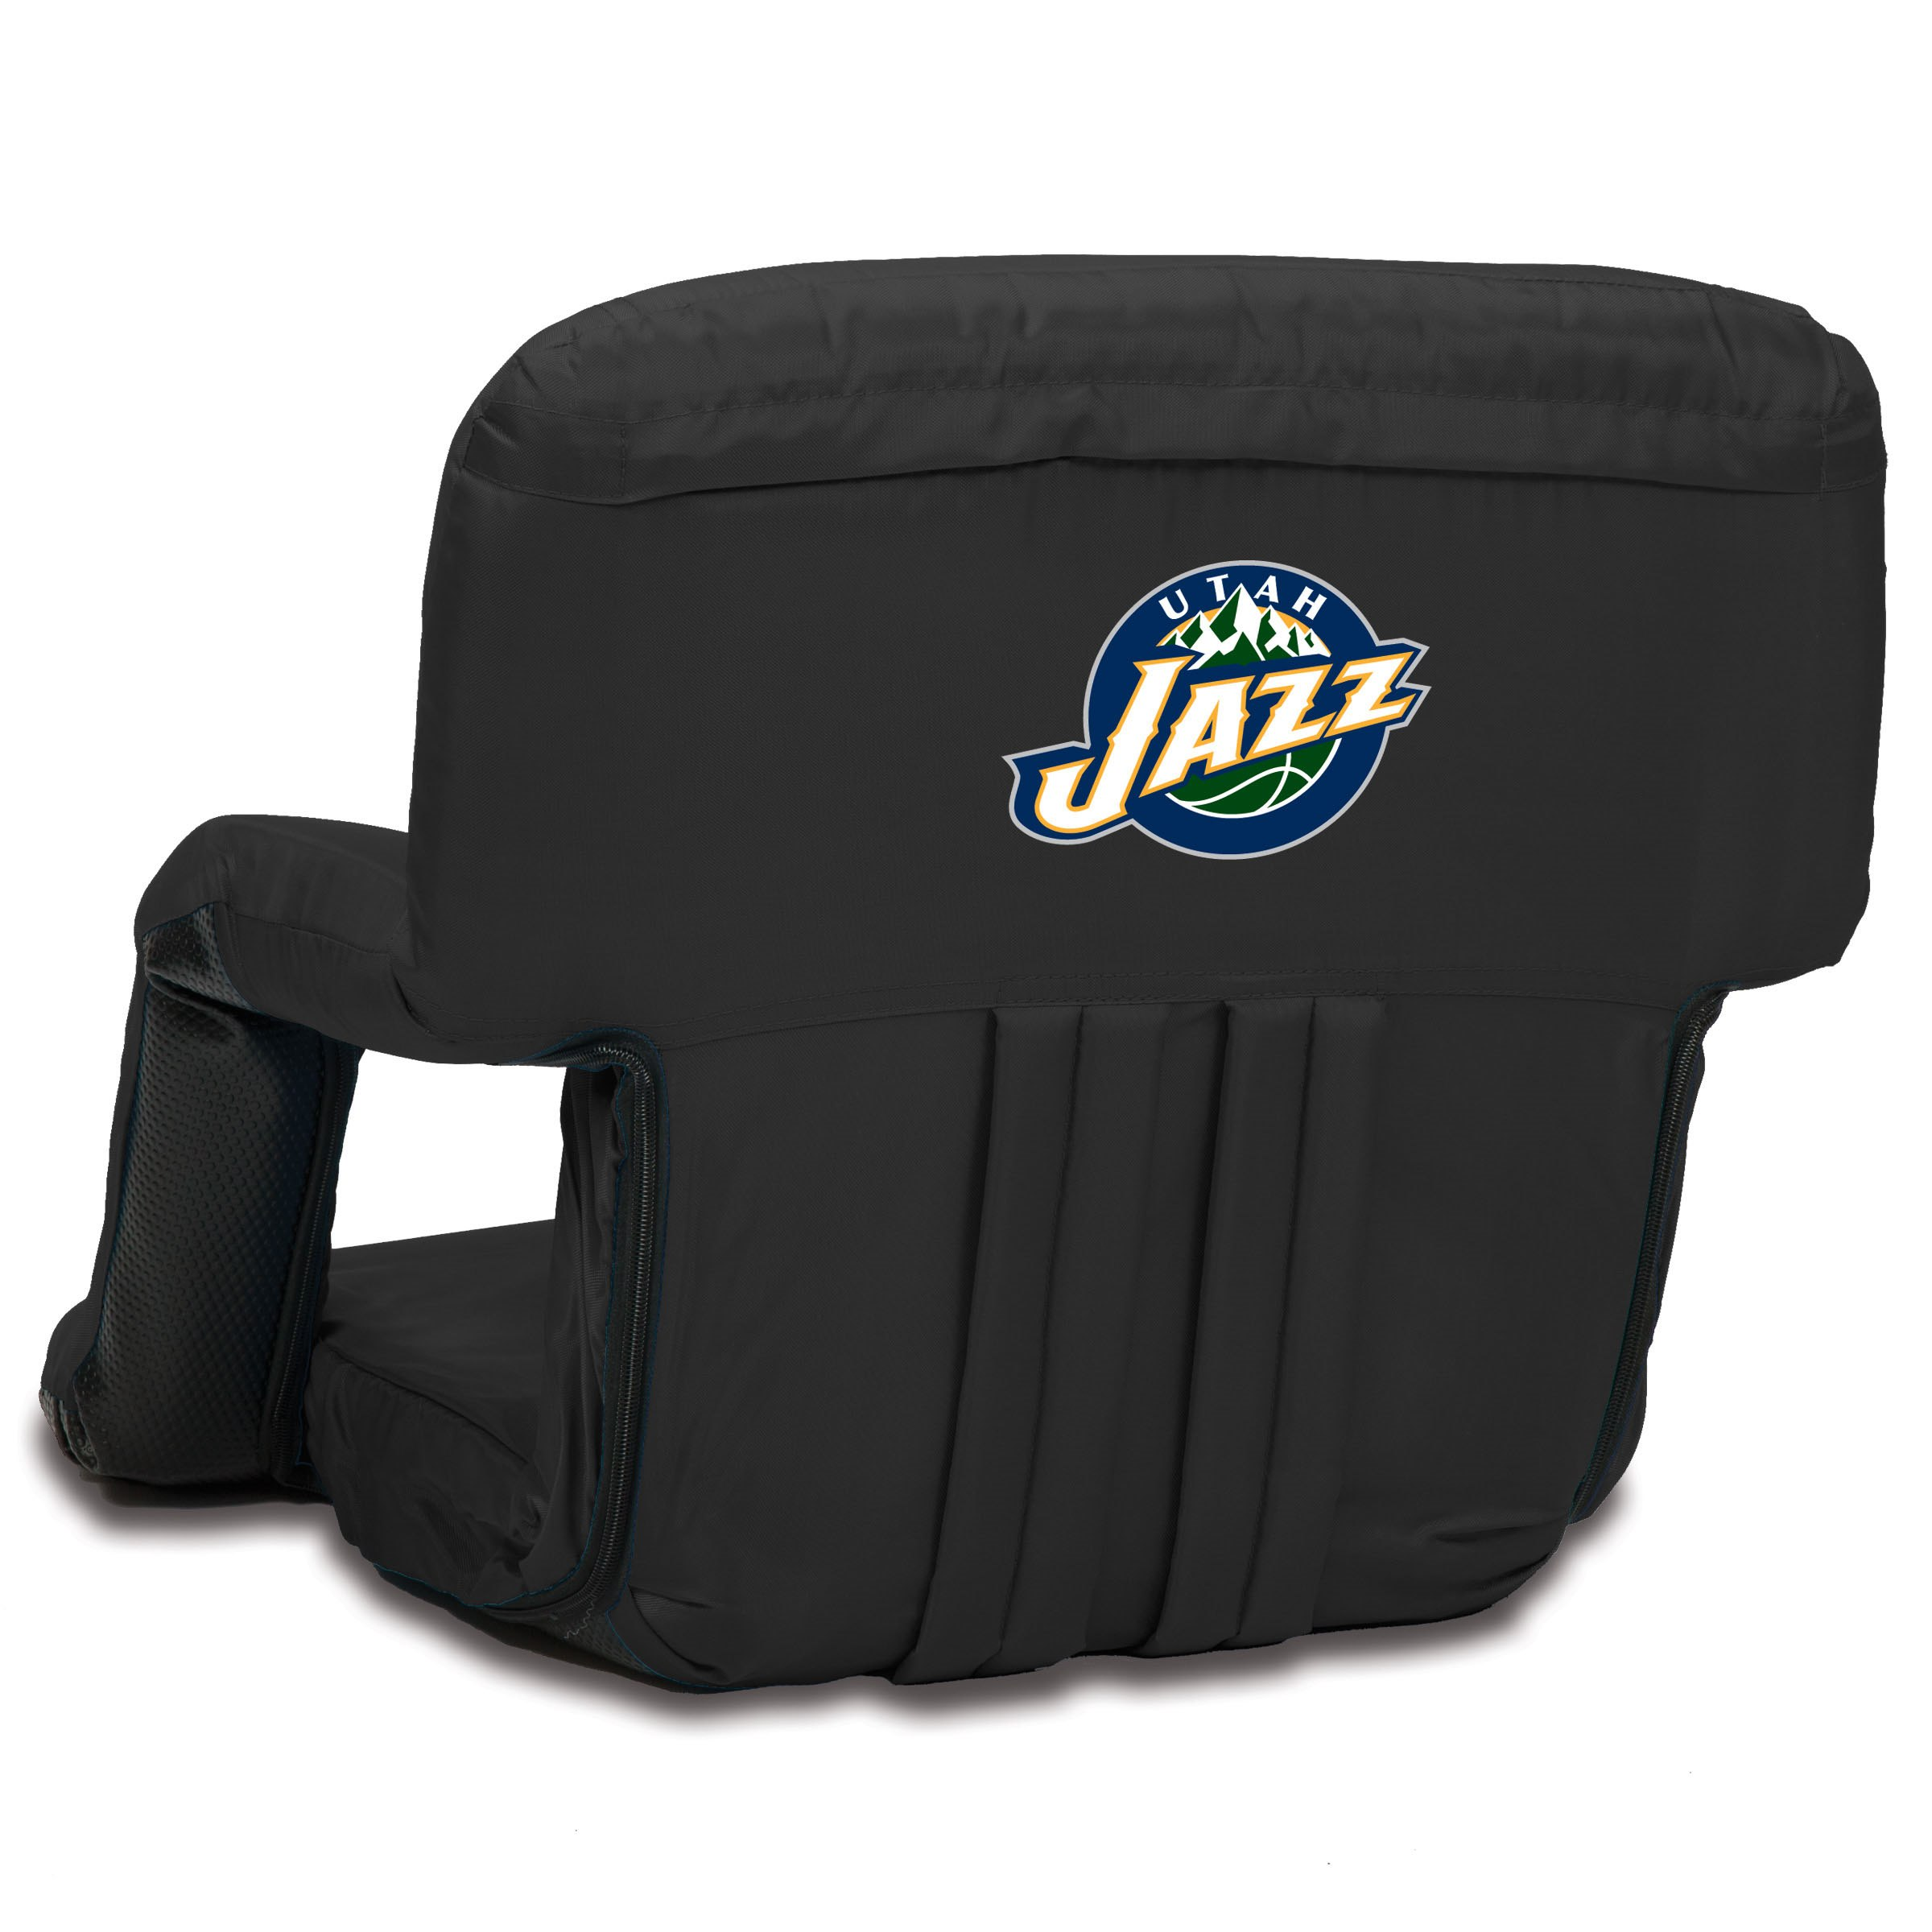 Picnic Time Nba Ventura Seat Utah Jazz